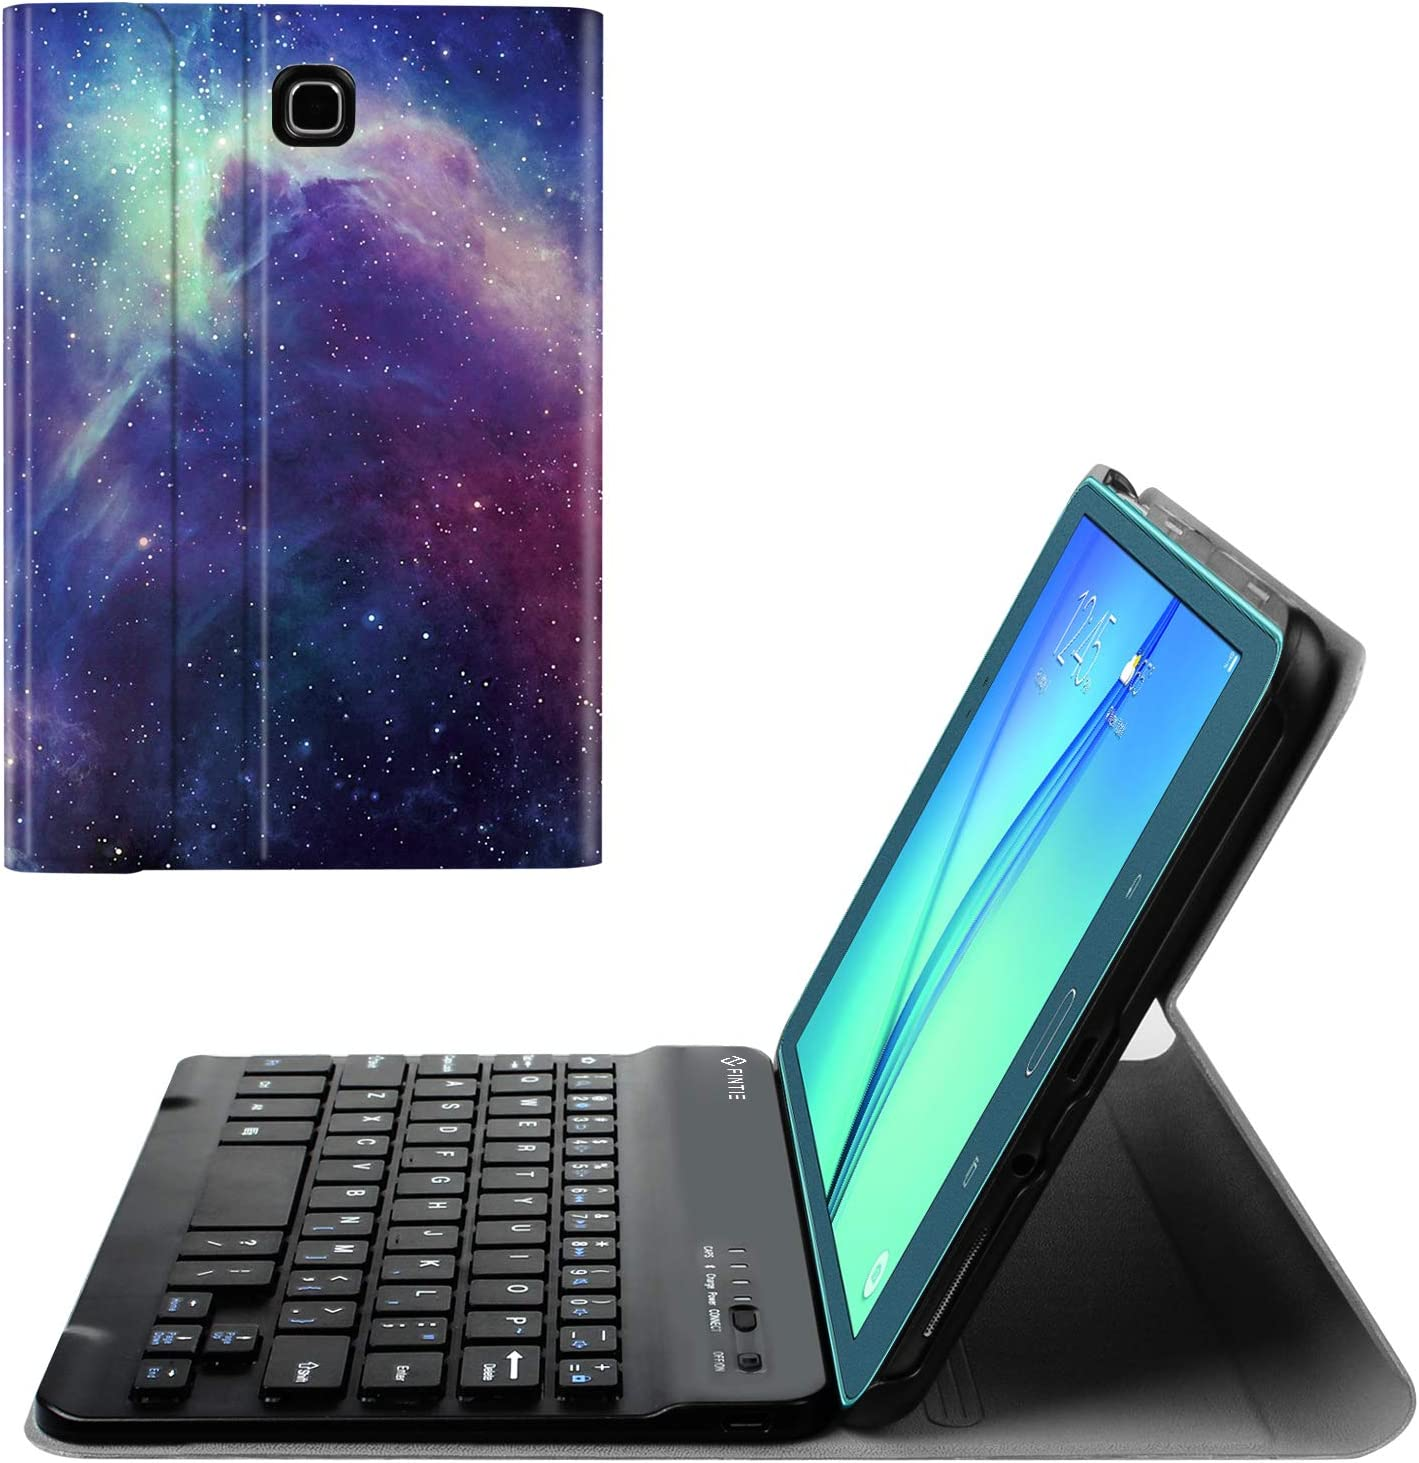 Fintie Keyboard Case for Samsung Galaxy Tab A 8.0 (2015), Slim Shell Stand Cover w/Magnetically Detachable Bluetooth Keyboard for Tab A 8.0 SM-T350/P350 2015 (NOT Fit 2017/2018 Version), Galaxy